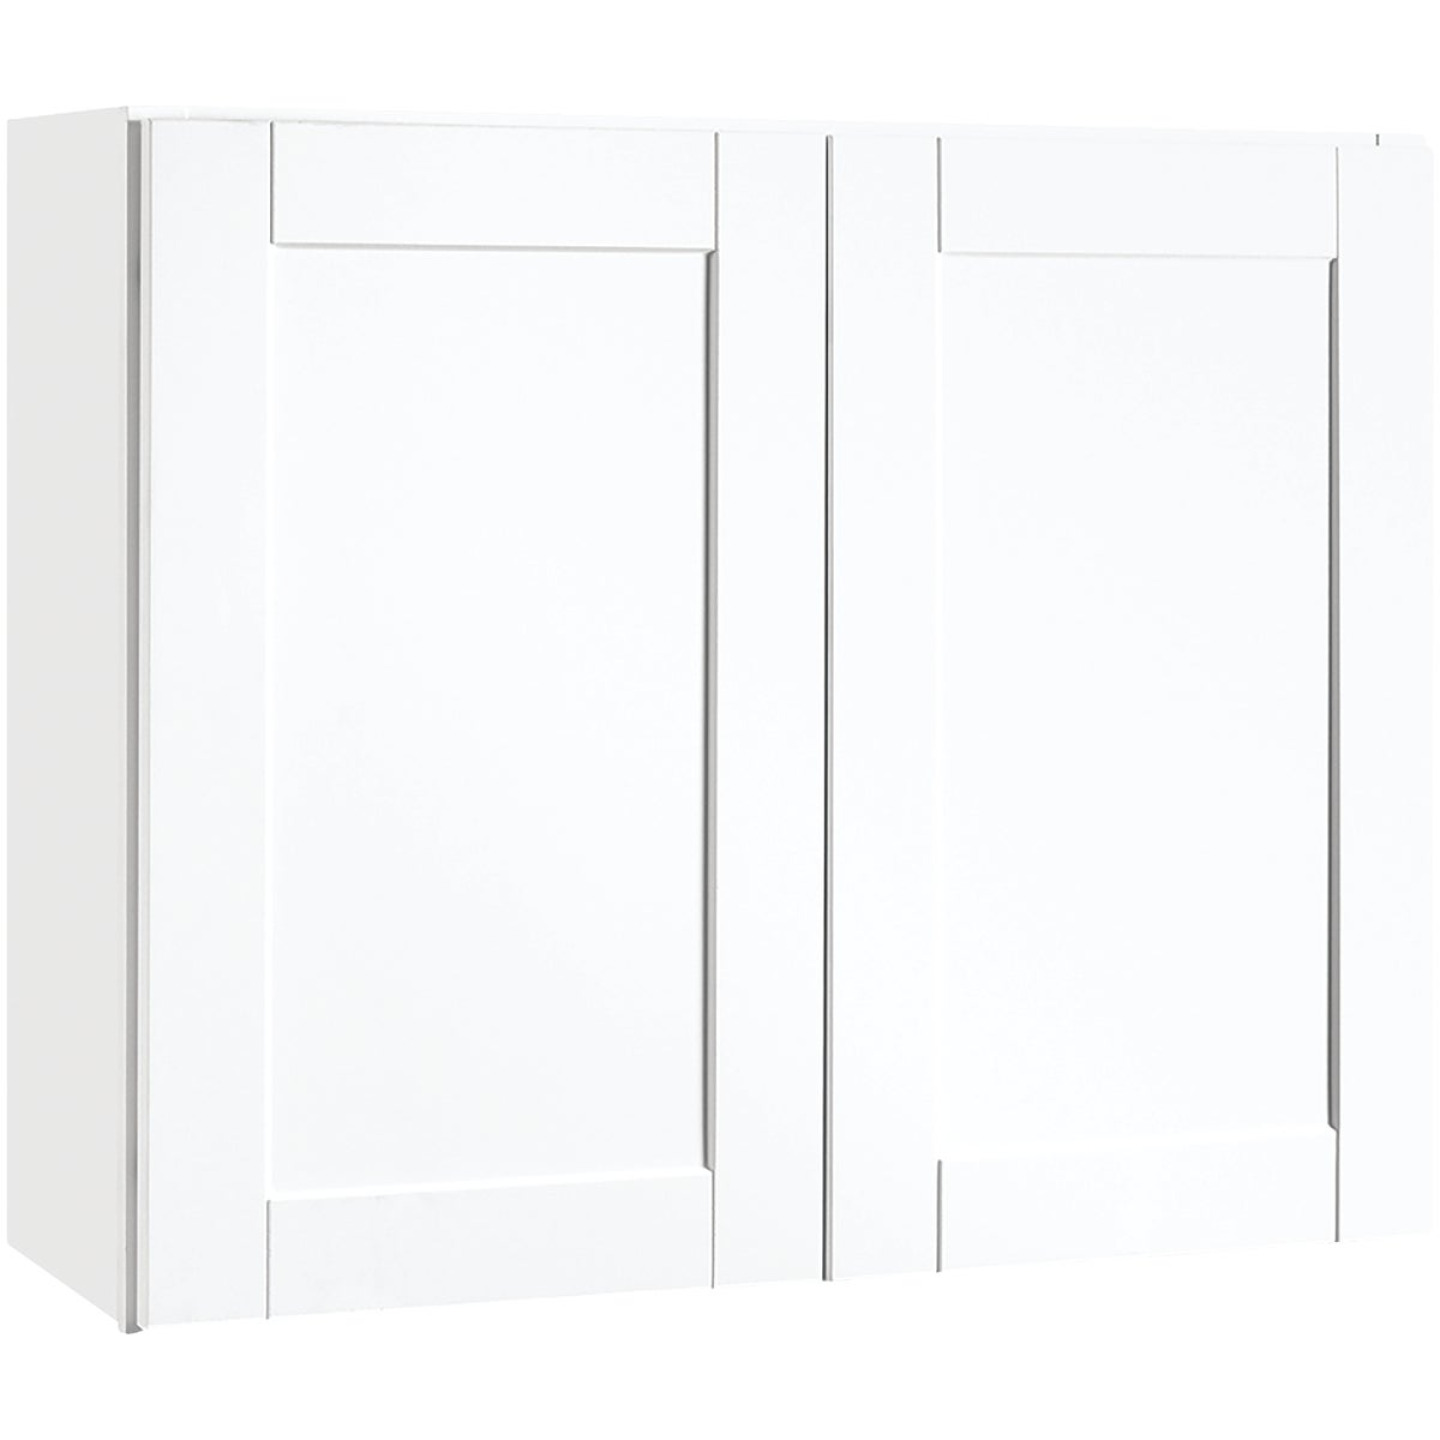 Continental Cabinets Andover Shaker 36 In. W x 30 In. H x 12 In. D White Thermofoil Wall Kitchen Cabinet Image 1